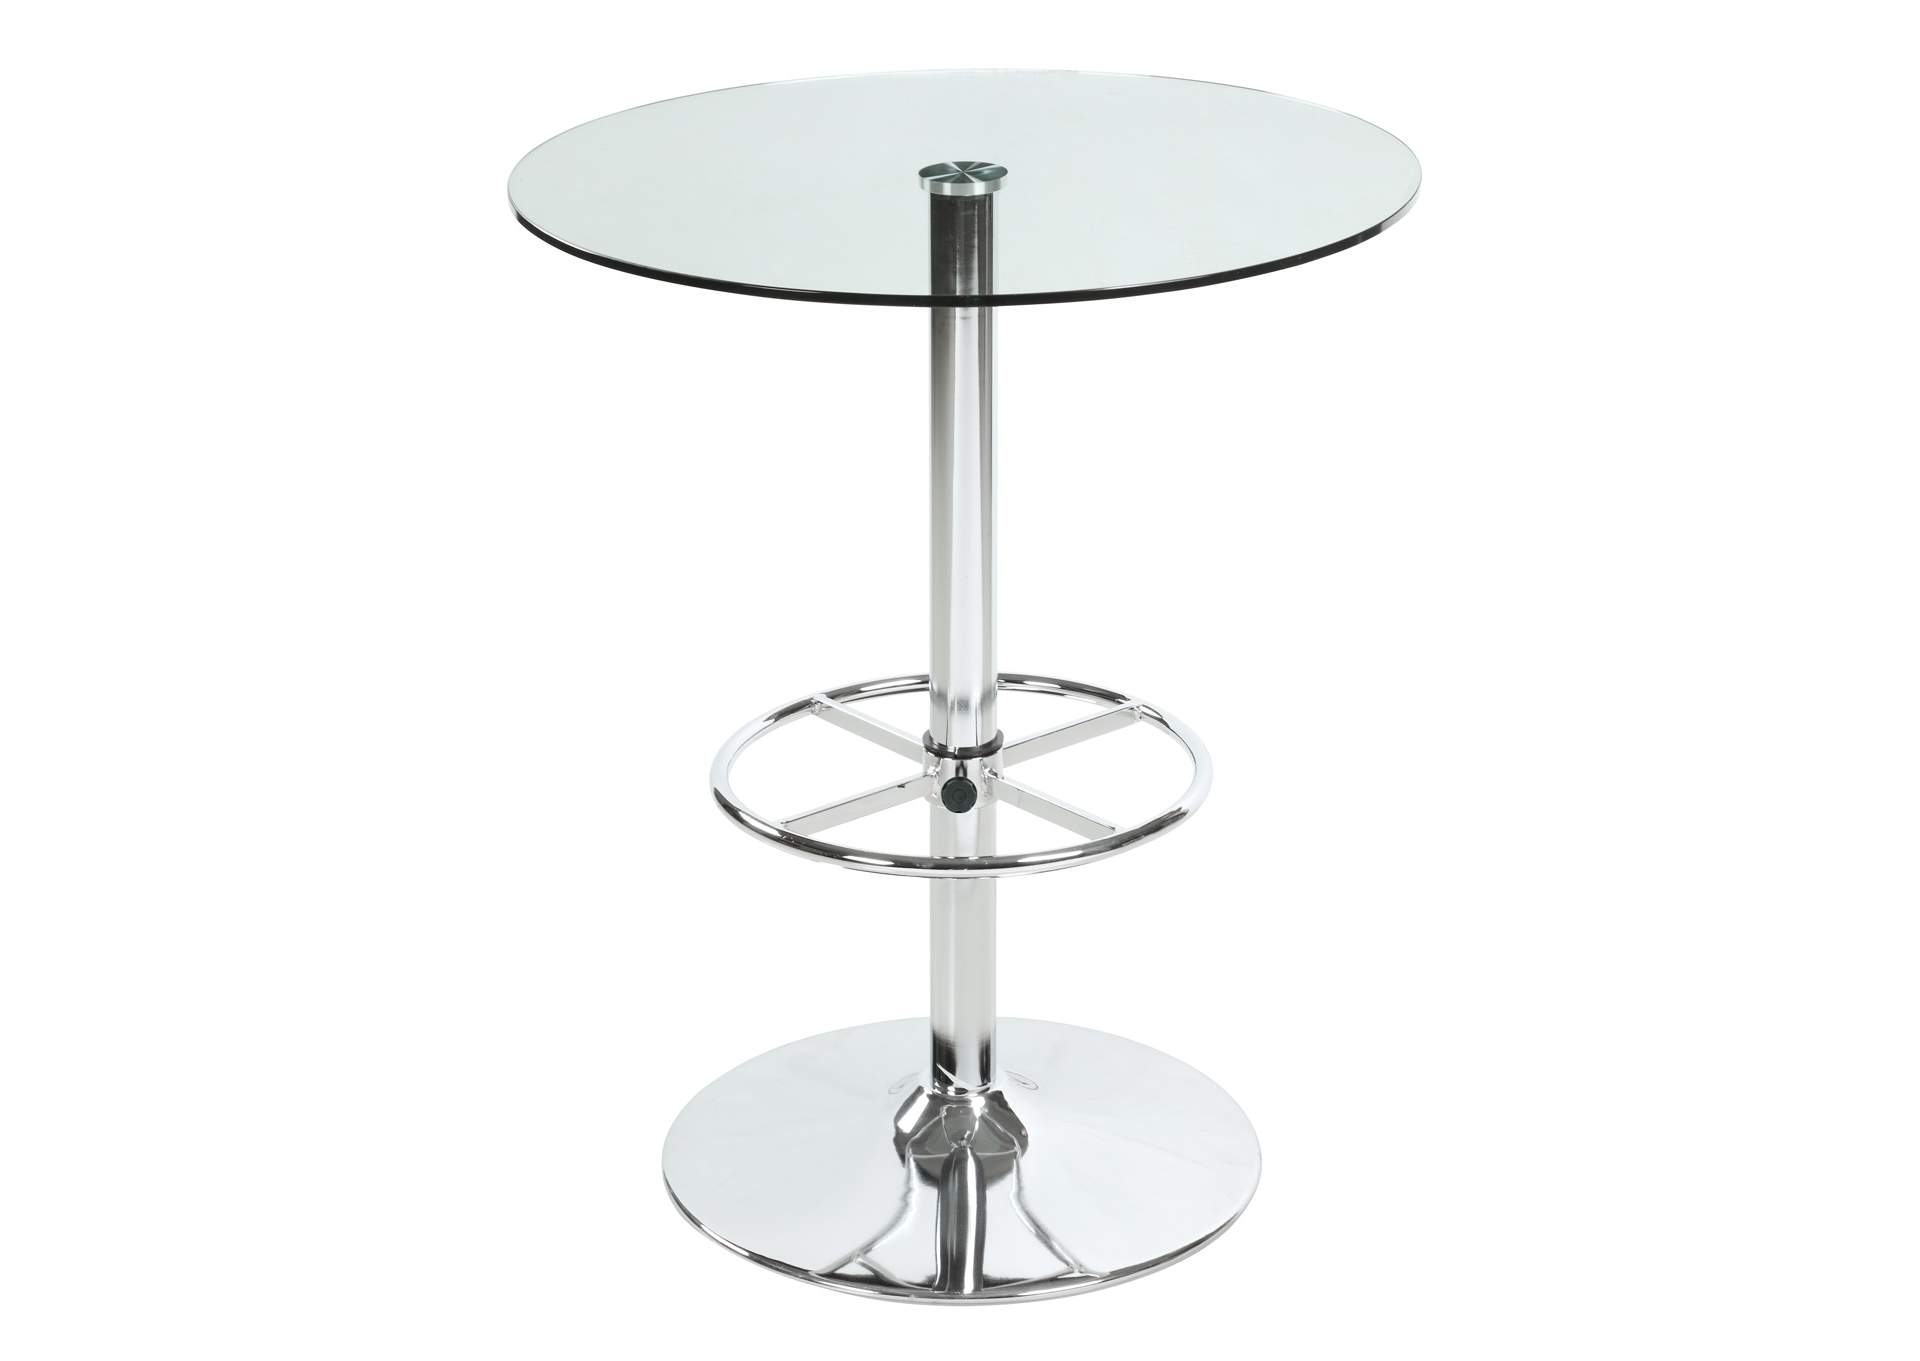 Chrome Round Glass Top Pub Table,Chintaly Imports